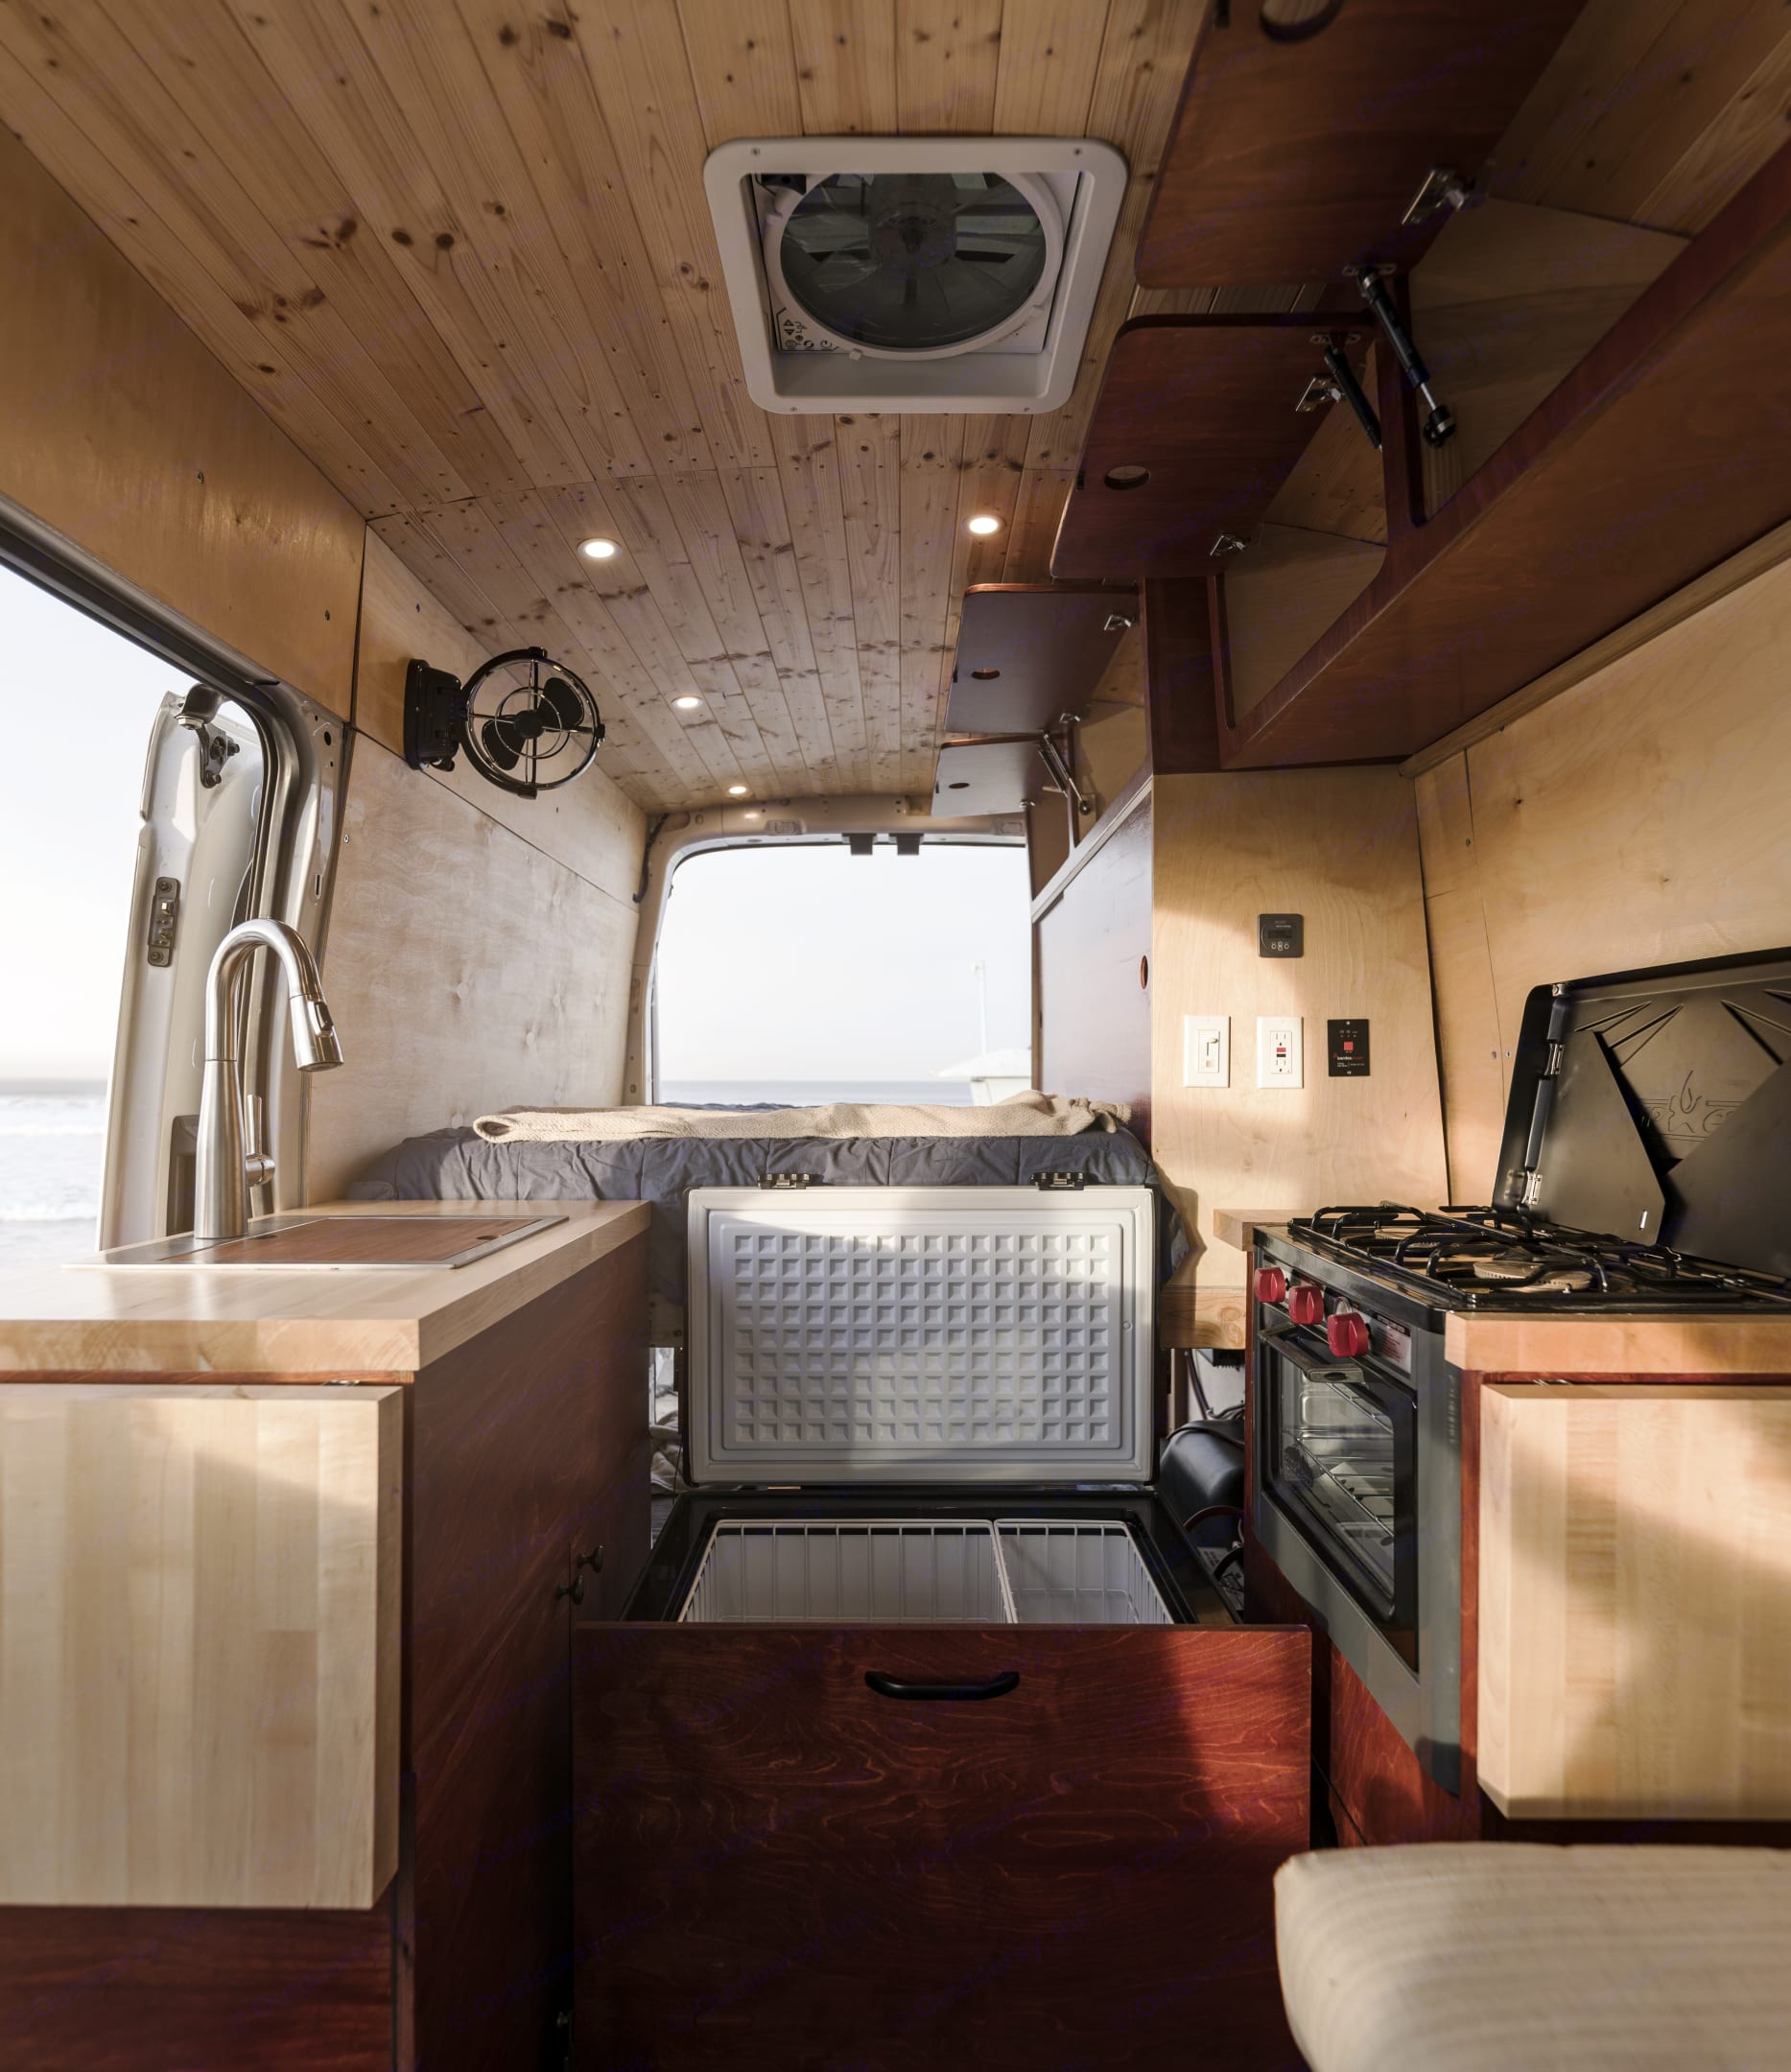 Prepare meals like Gordon Ramsey! Ample space in the kitchen and best part is you can stand up while cooking/walking. We are 6'2 and fit perfectly!. Ford Transit 2019